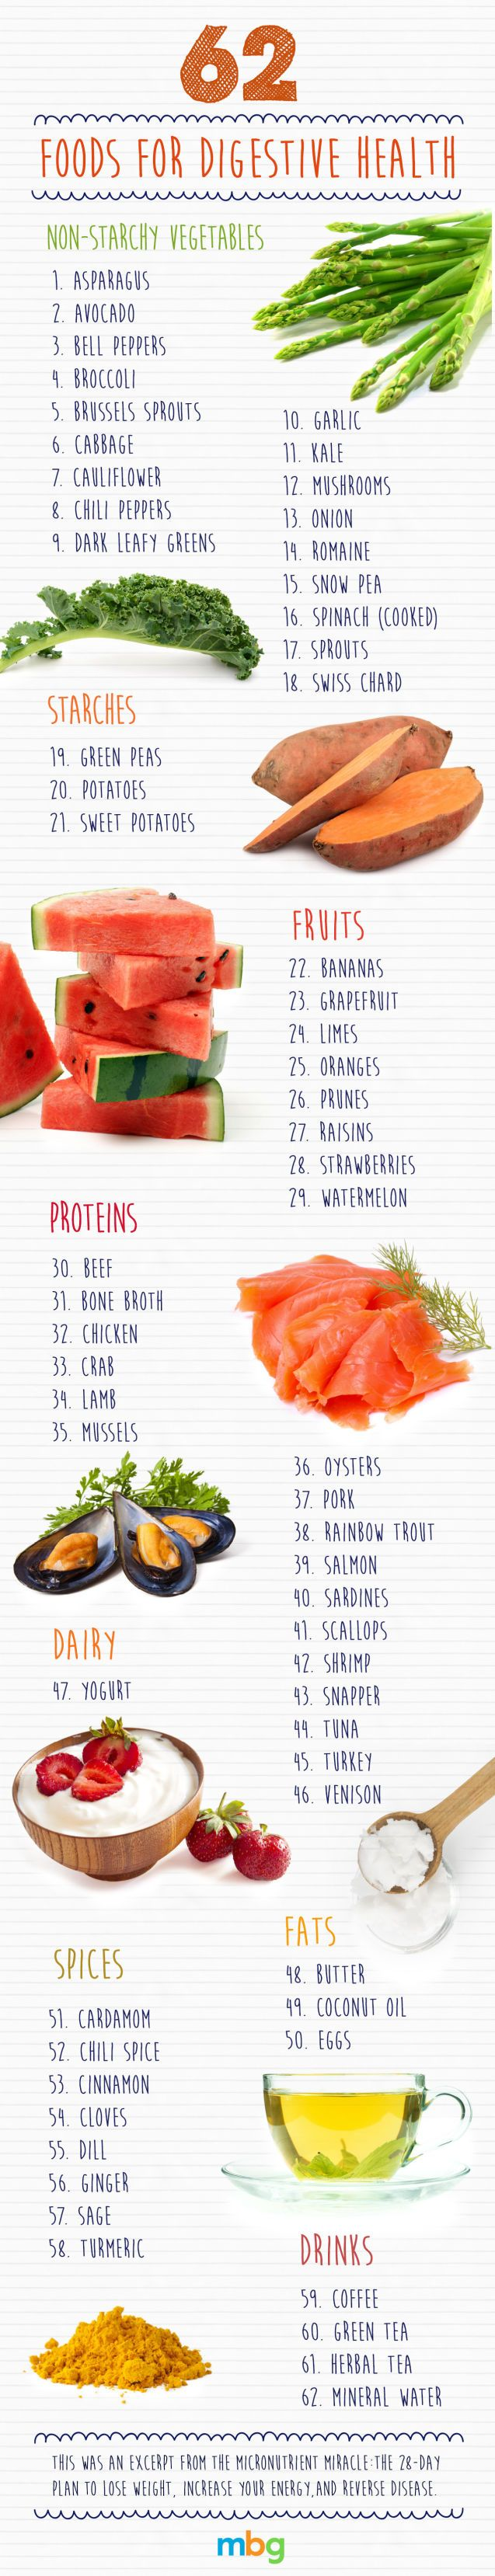 62 Foods For Improving Your Digestive Health Infographic